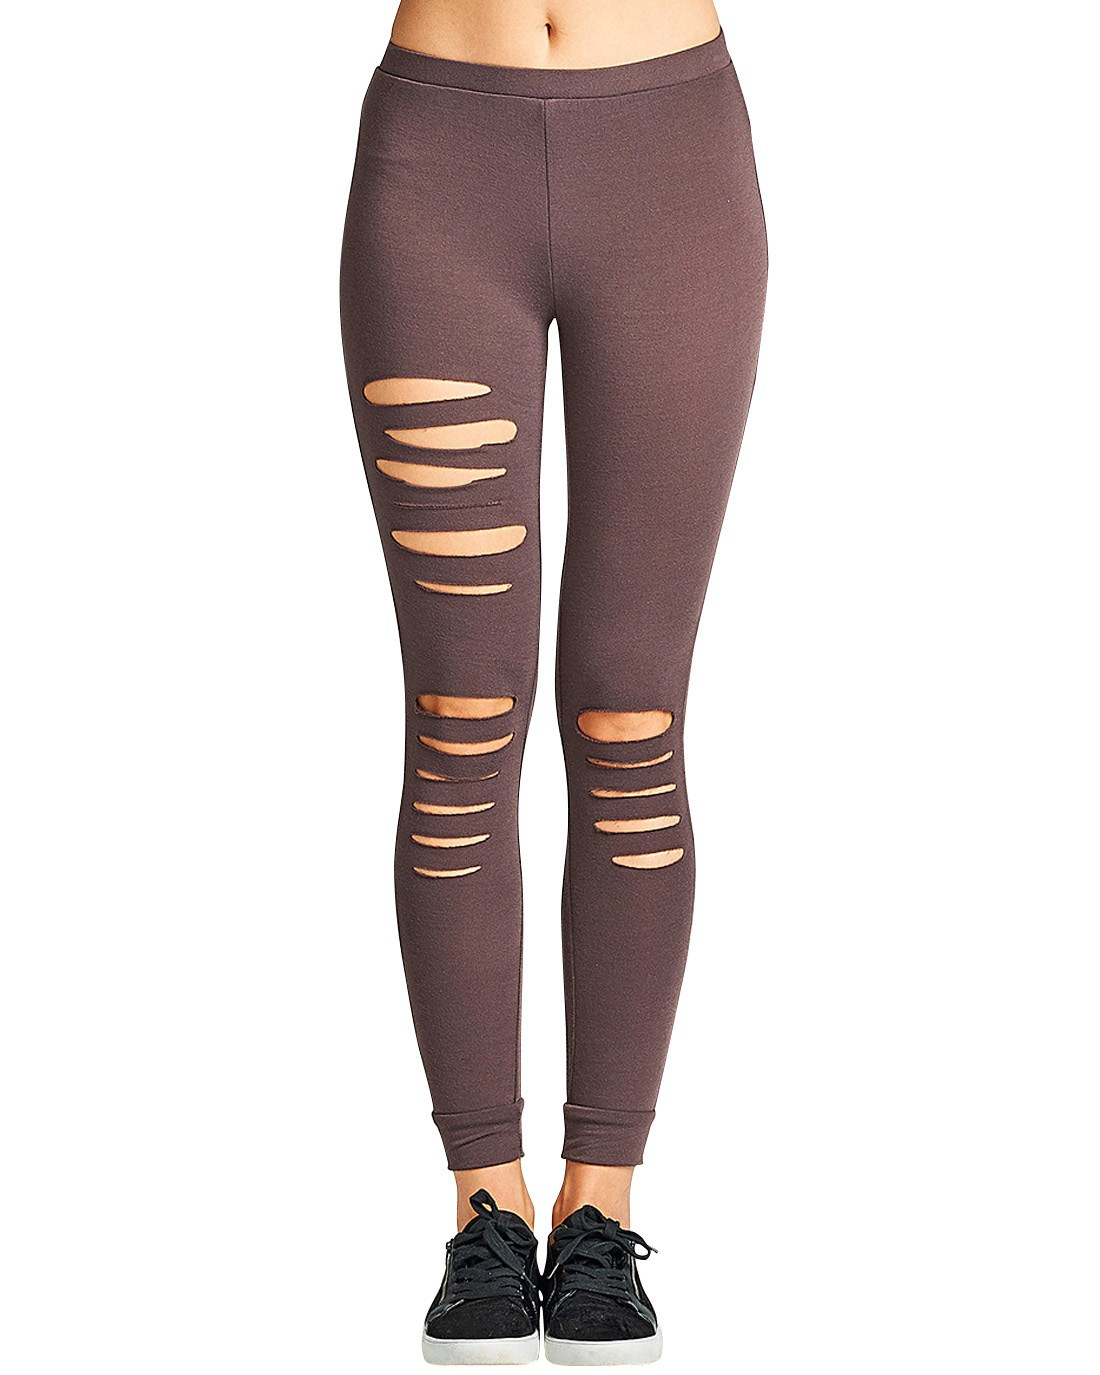 Ladies fashion pair of stretch-knit leggings featuring a ripped design and an elasticized waist-id.33790c